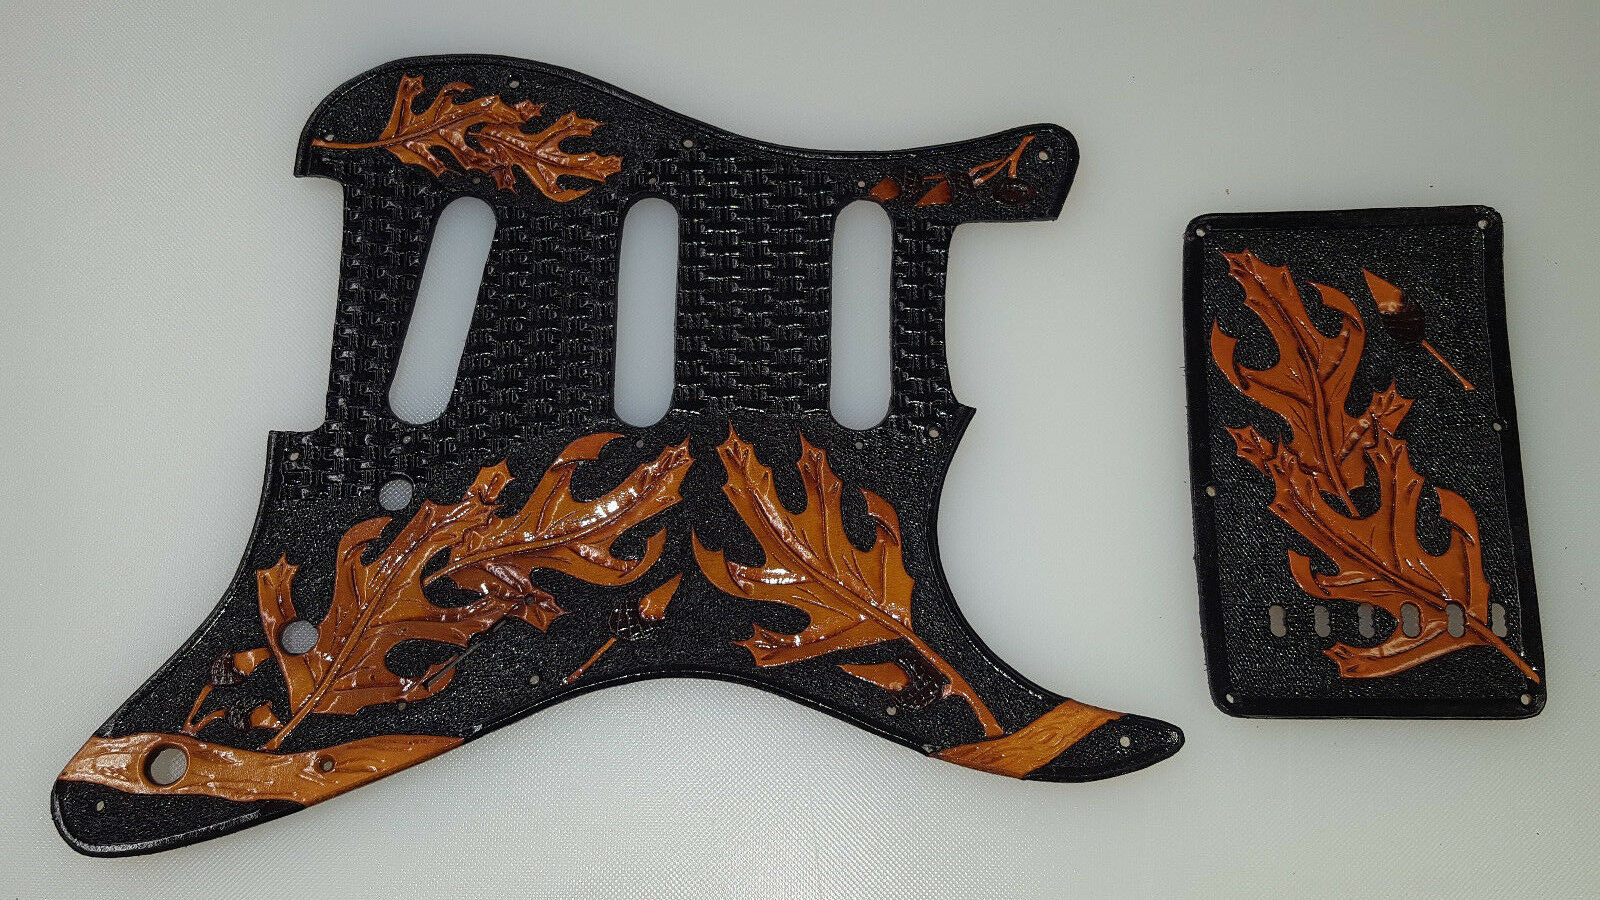 Leather pickguard Fender Stratocaster hand tooled    Leaves of Destiny  and back